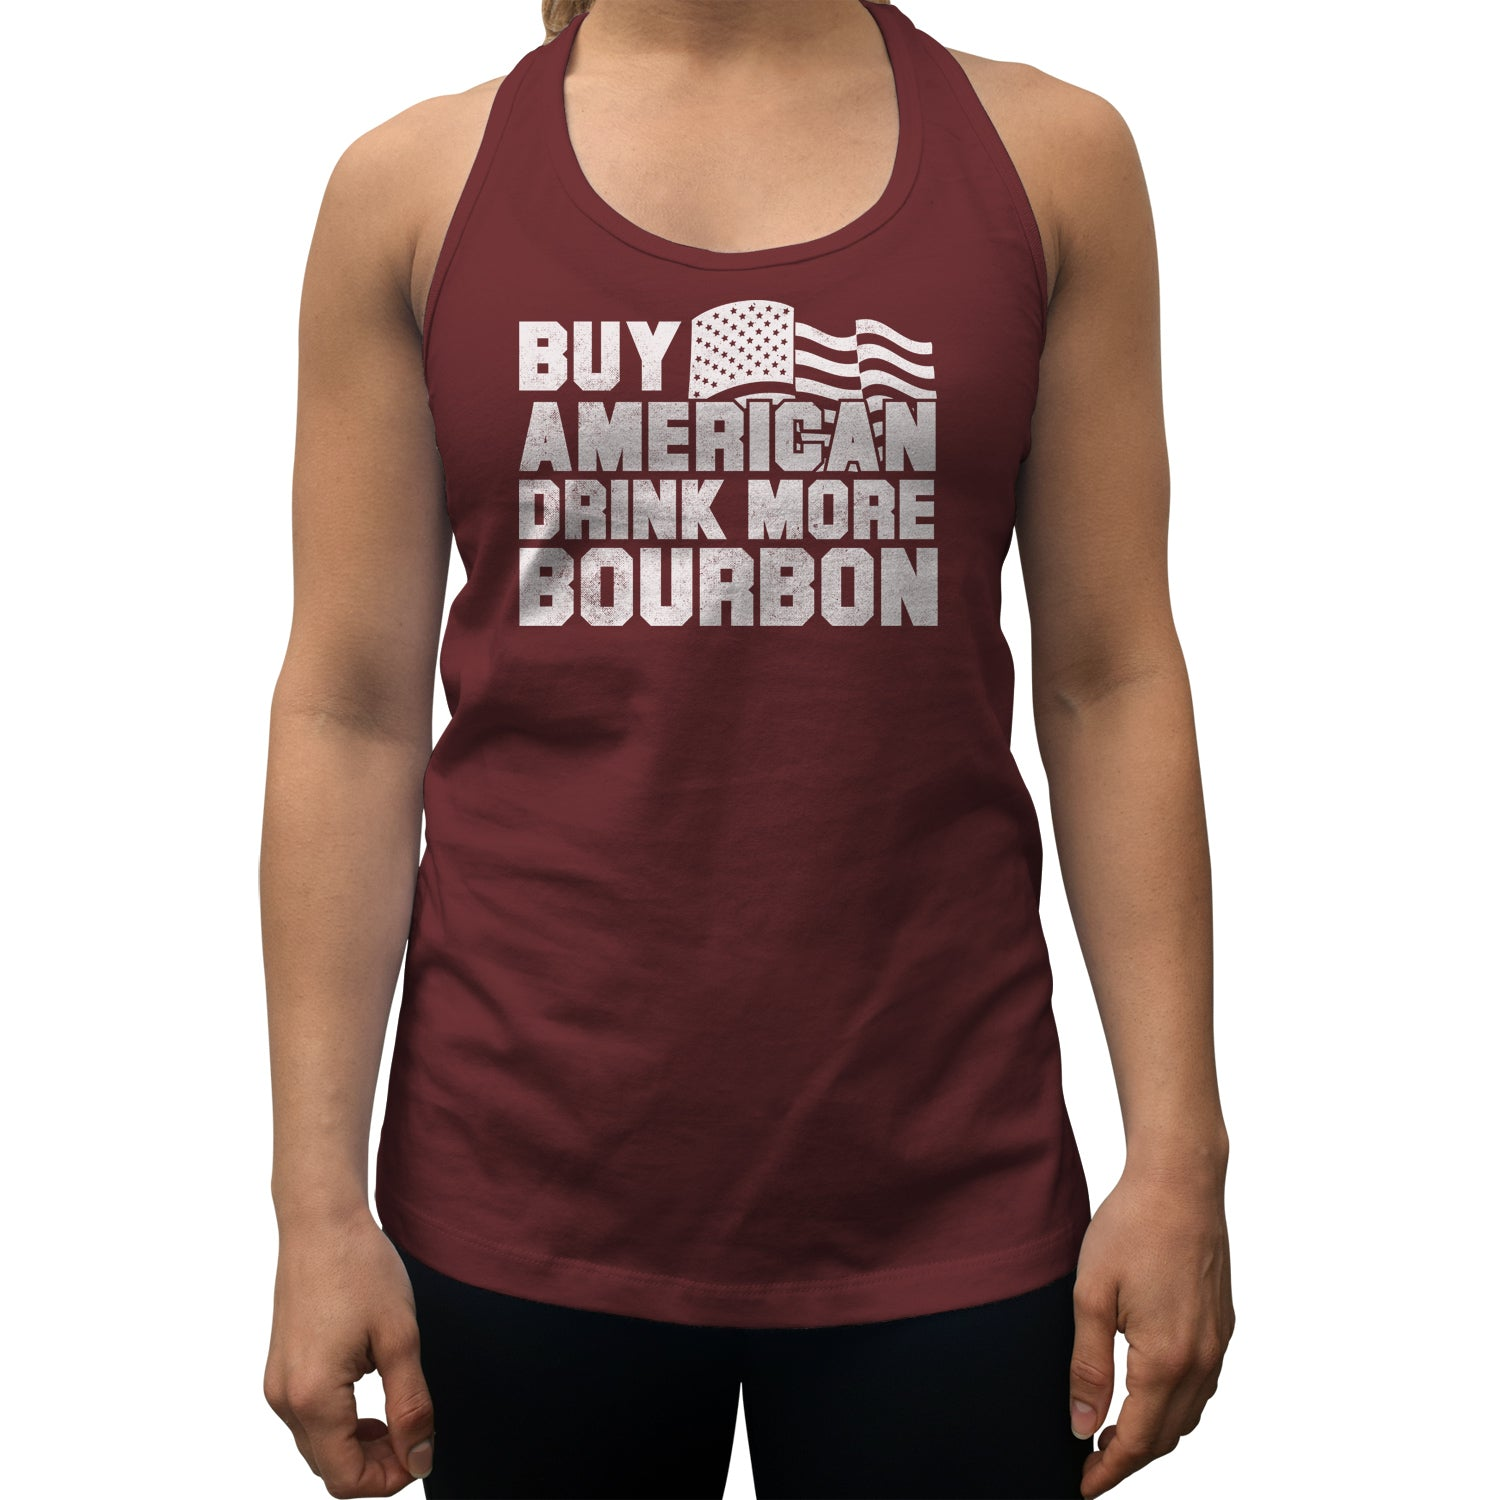 Women's Buy American Drink More Bourbon Racerback Tank Top